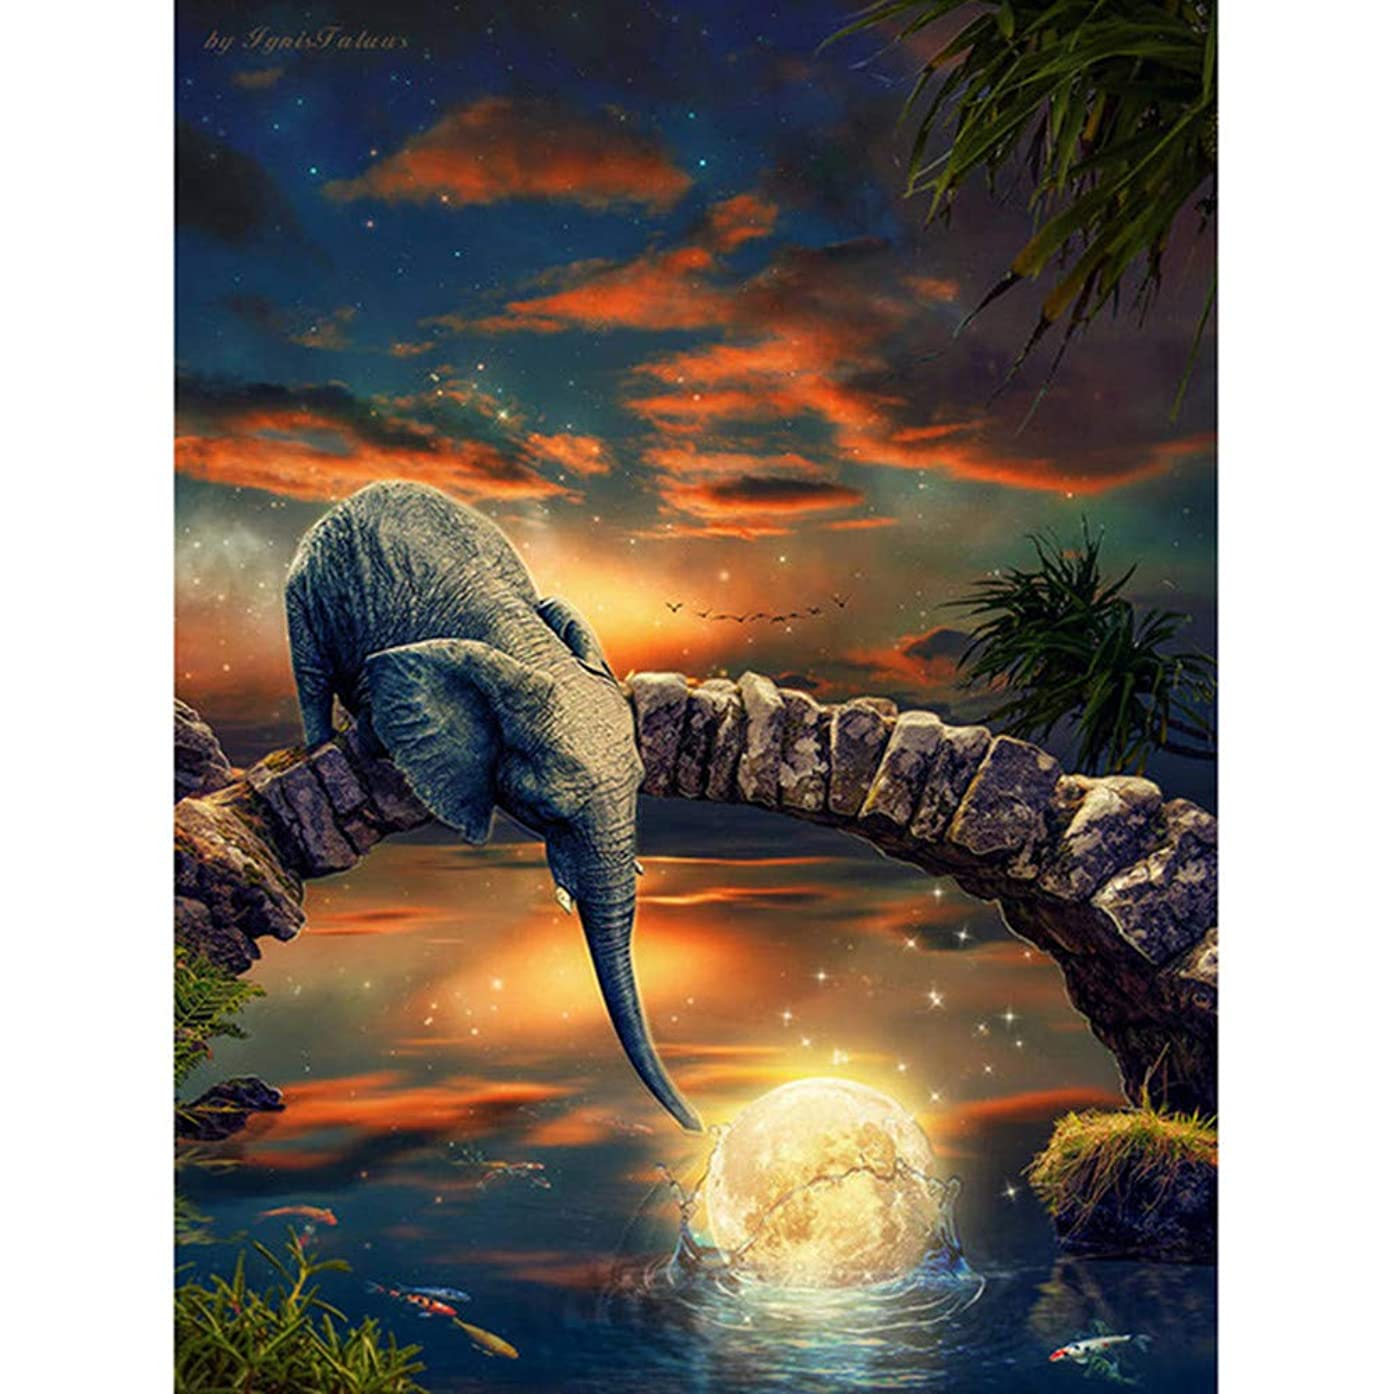 DIY 5D Diamond Painting by Number Kits, Crystal Rhinestone Diamond Embroidery Paintings Pictures Arts Craft for Home Wall Decor, Full Drill,Elephant and Moon 11.8X15.7 inch